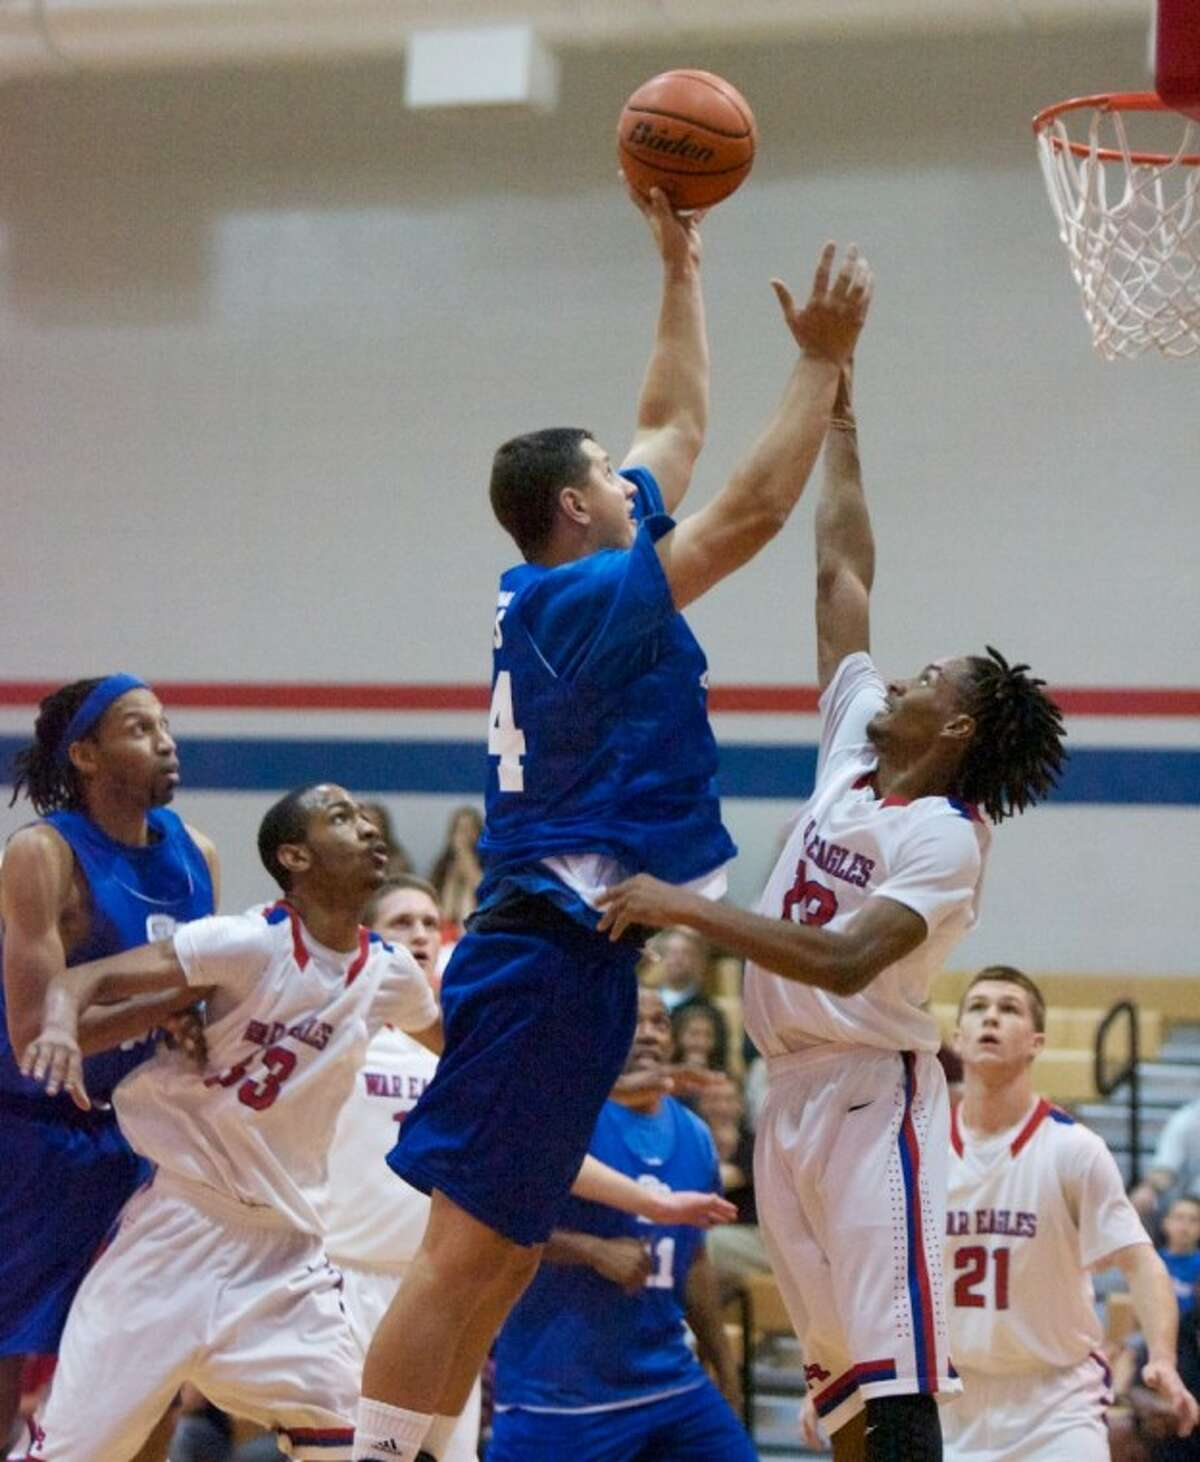 Alum Clint Laskoskie battles against Oak Ridge's Trumaine Jefferson as he goes up for a basket during Friday night's game at Oak Ridge High School. Oak Ridge High School varsity basketball team alumni from previous years returned to play against this years current varsity team.